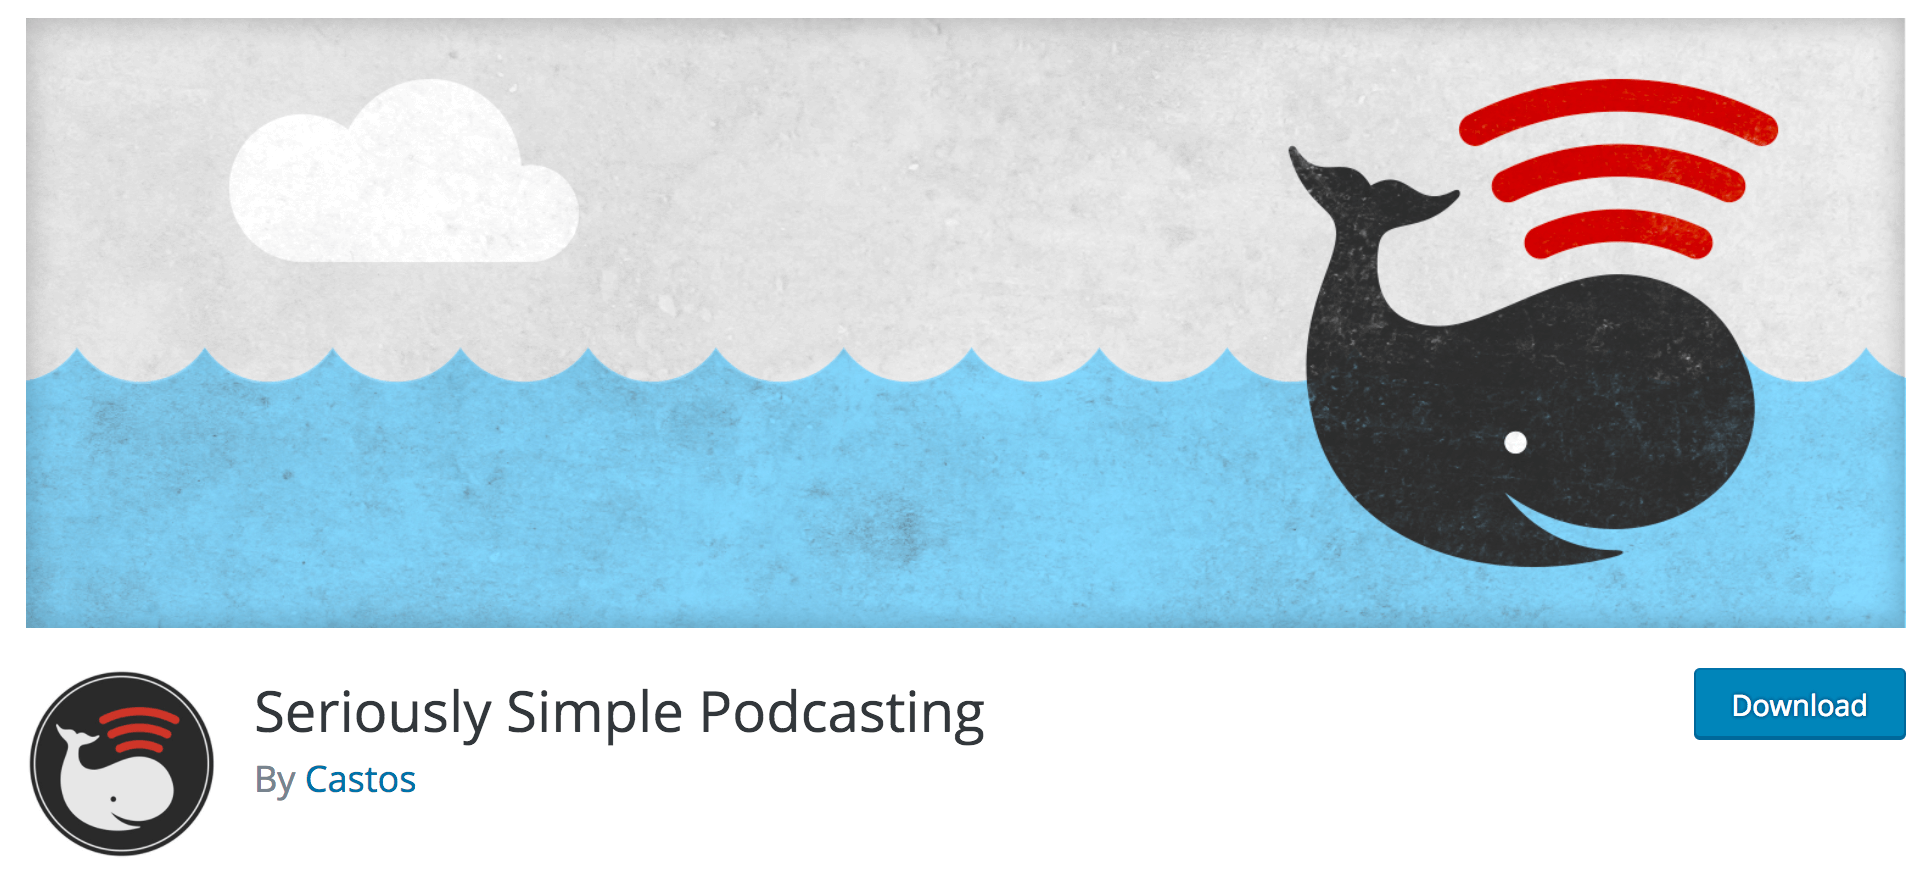 The Seriously Simple Podcasting plugin.